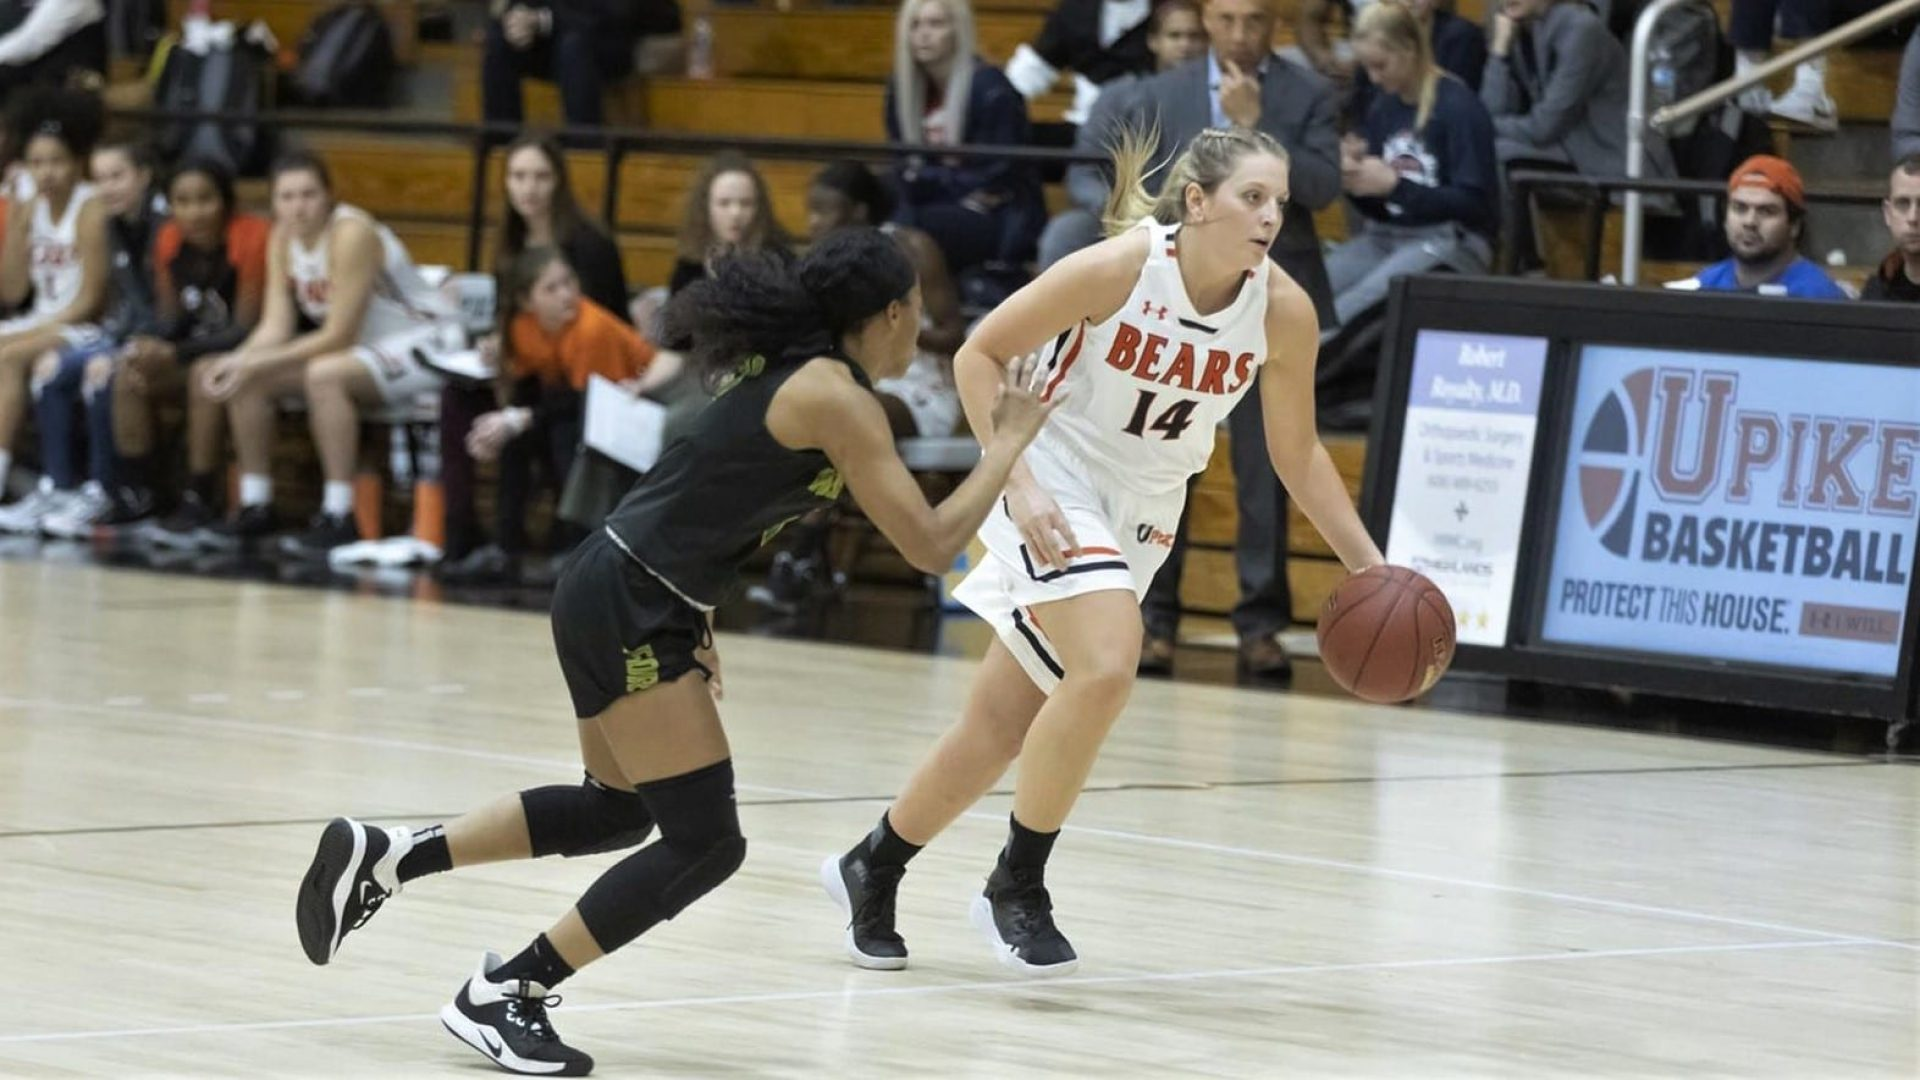 COLLEGE BASKETBALL: UPIKE men, women fall to GC in MSC matchups